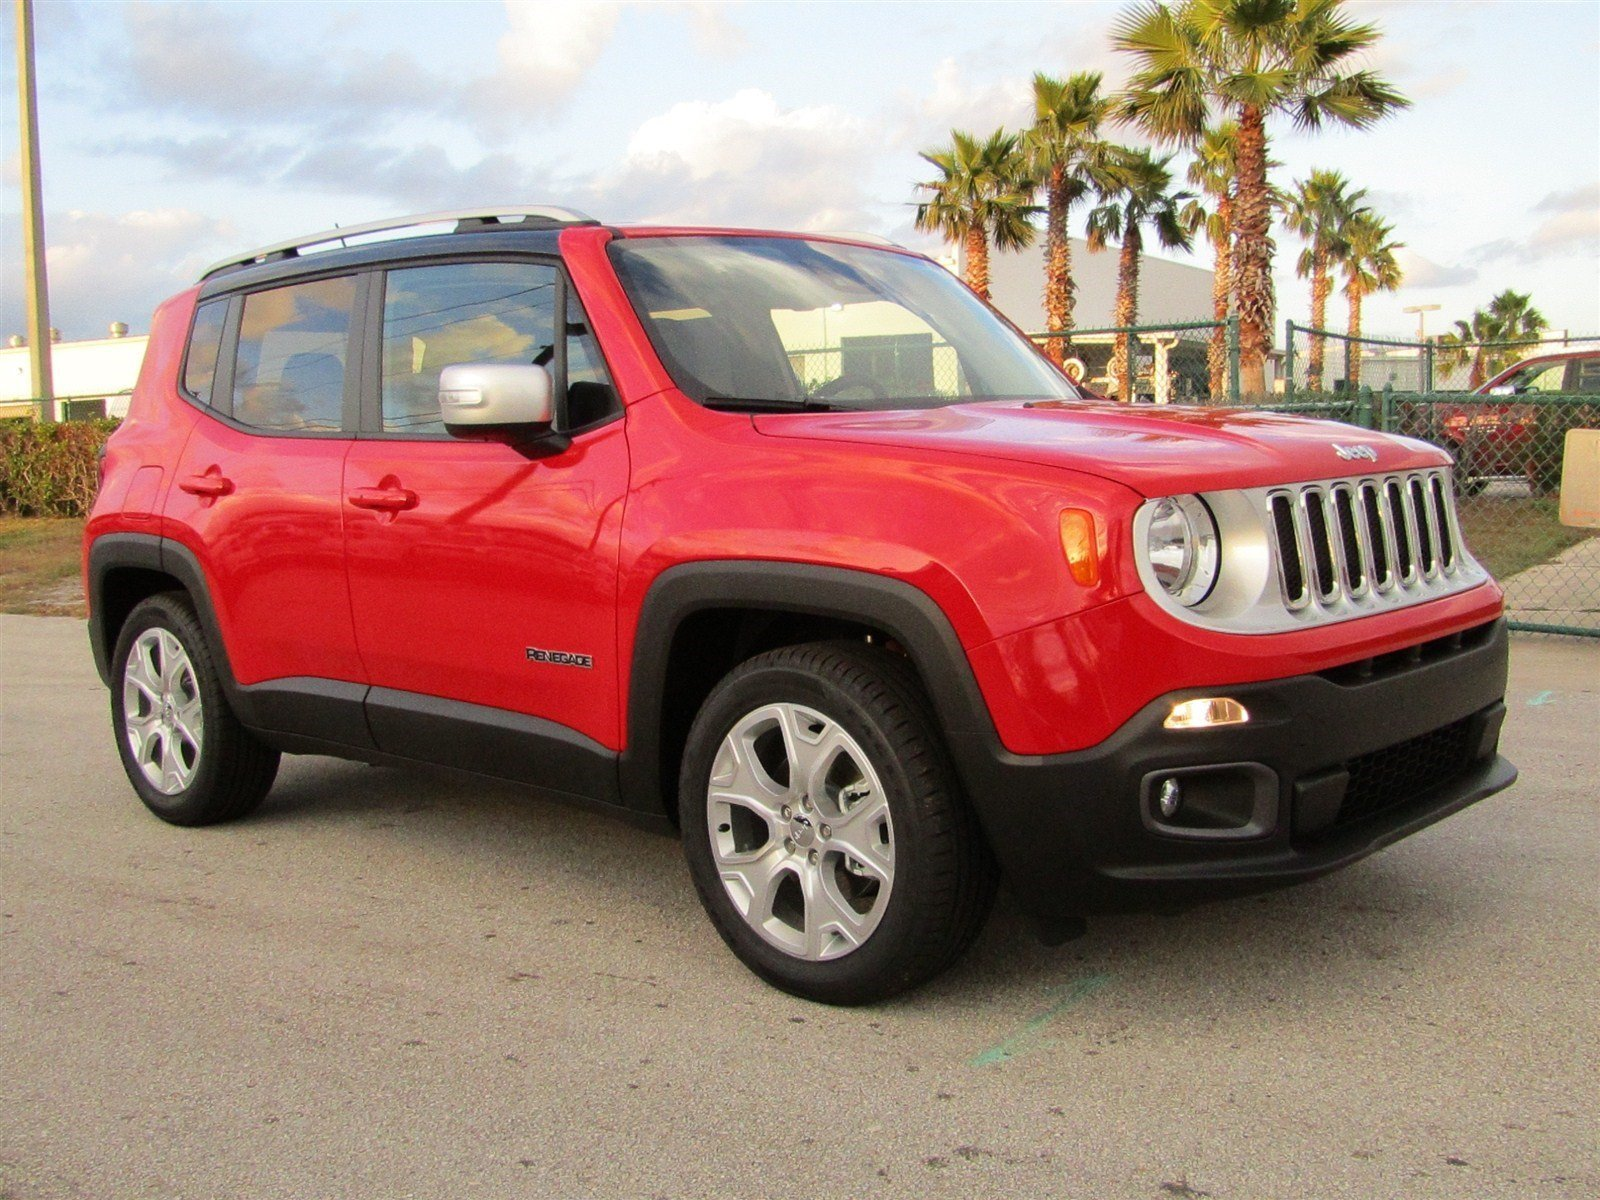 new 2017 jeep renegade limited sport utility in daytona beach j17215 daytona dodge chrysler. Black Bedroom Furniture Sets. Home Design Ideas